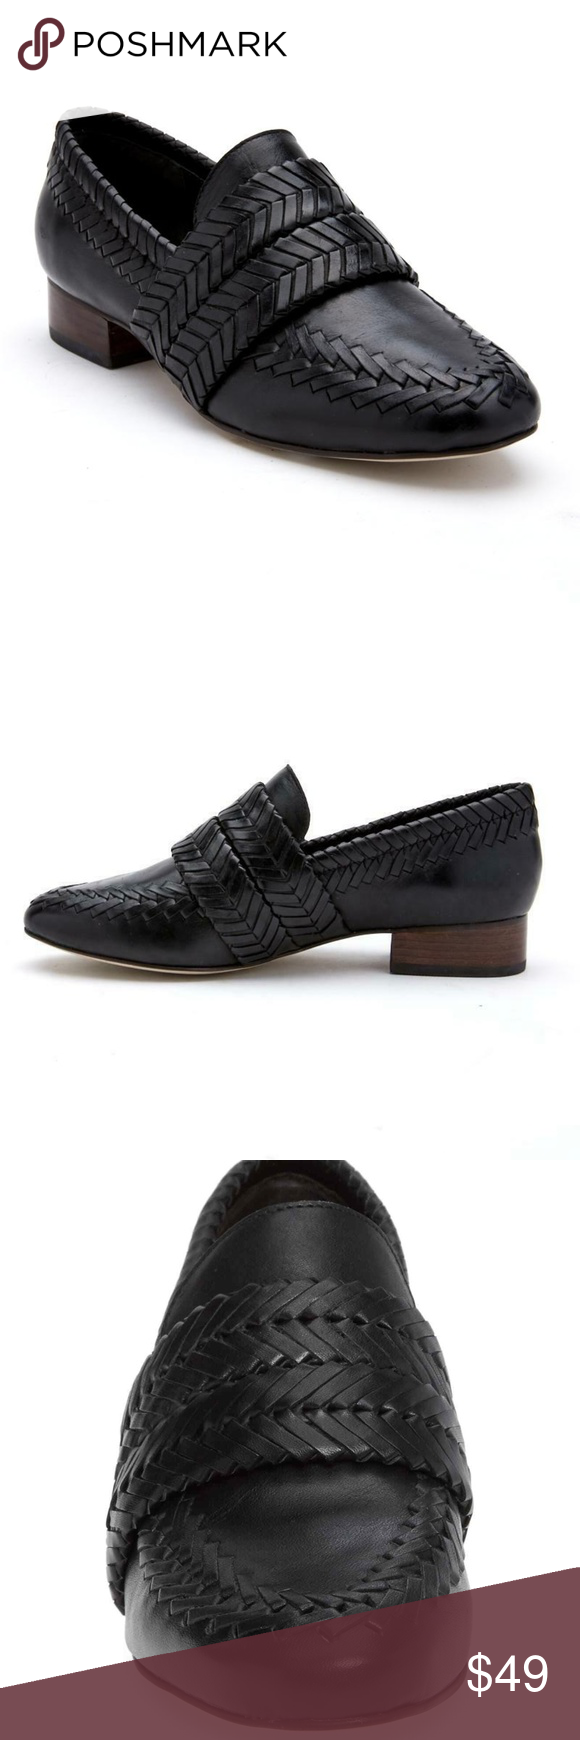 new leather Matisse Edith Loafers